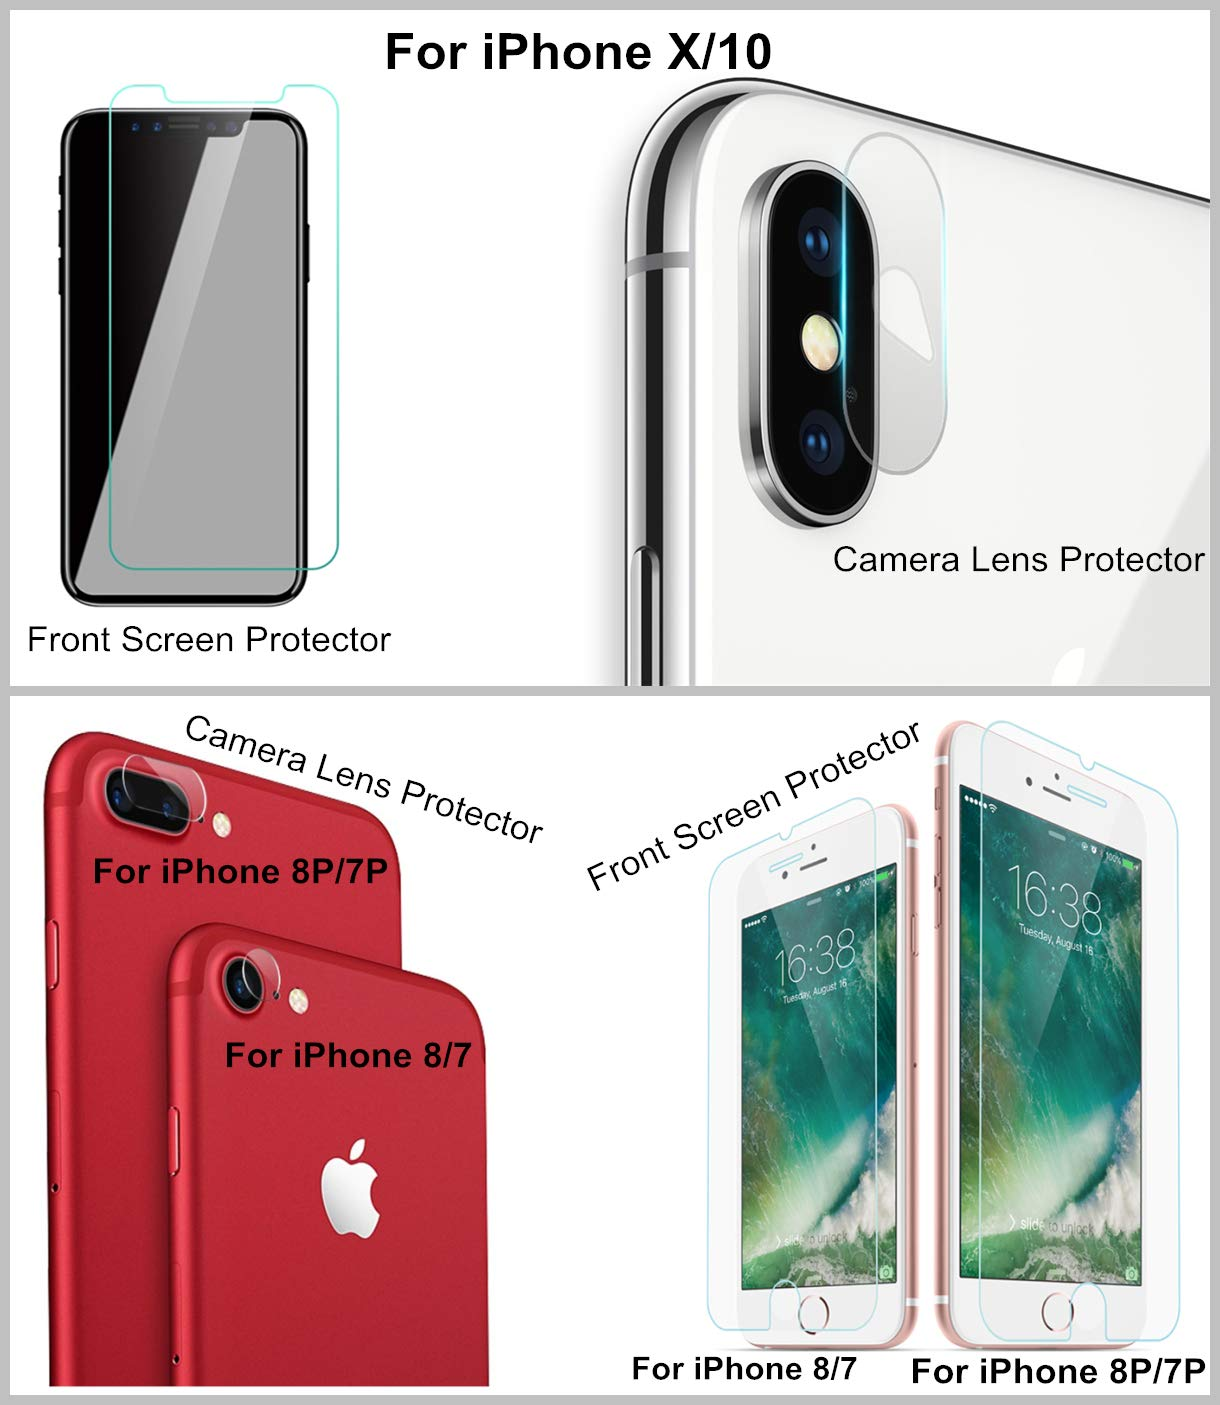 Slow is Fast Cell Phone Tempered Glass Screen Protector Front + Camera Lens Protector 9H Anti-Scratch for iPhone X/10, 8 Plus, 7 Plus, 8, 7 (Clear, iPhone 7+), If Unsatisfied Refund The